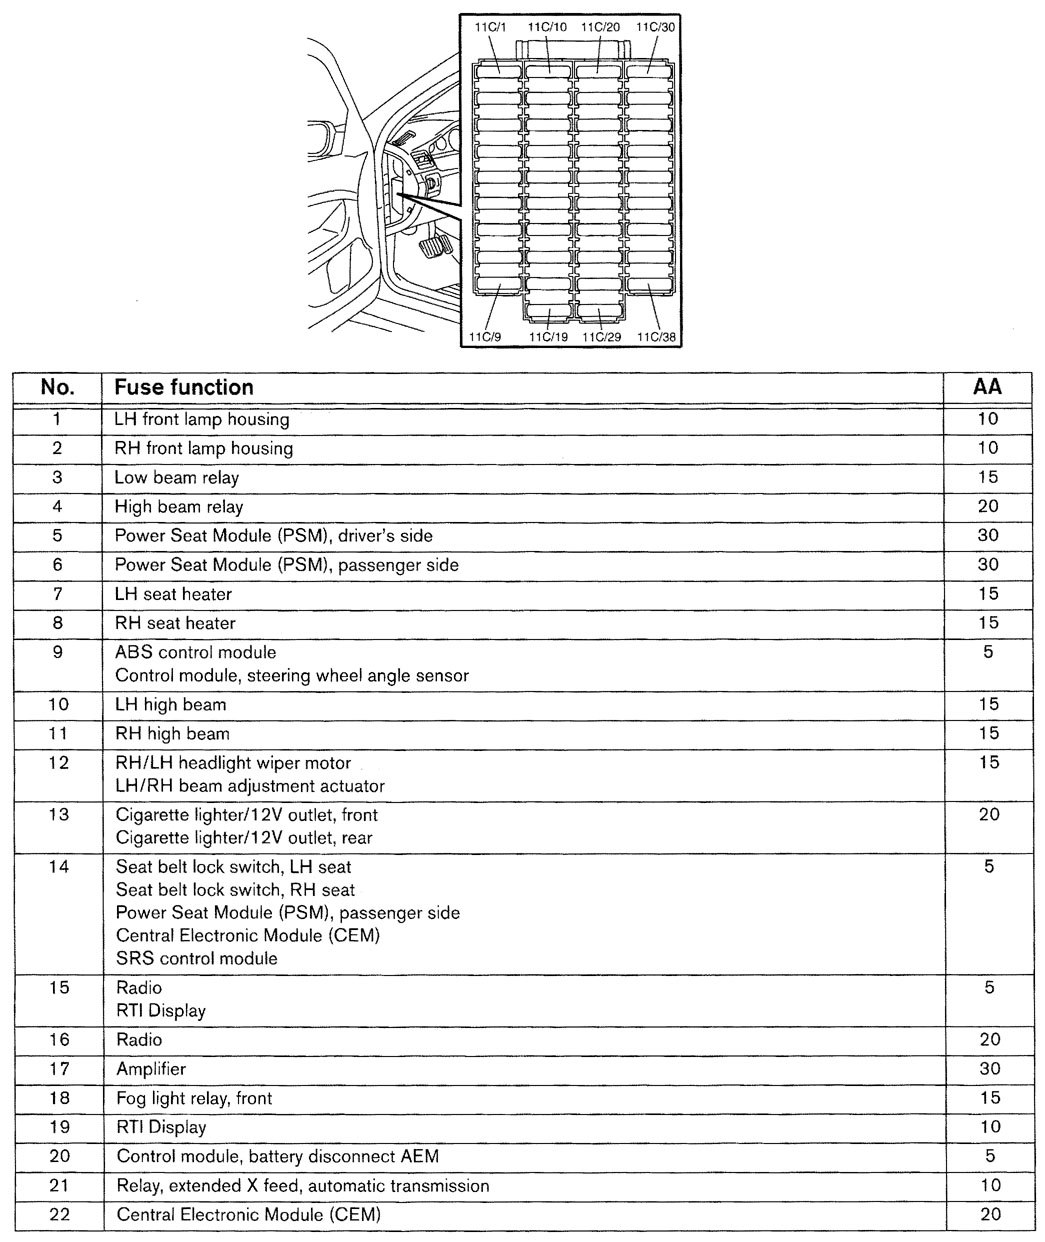 Volvo V70  2001  - Wiring Diagrams - Fuse Panel